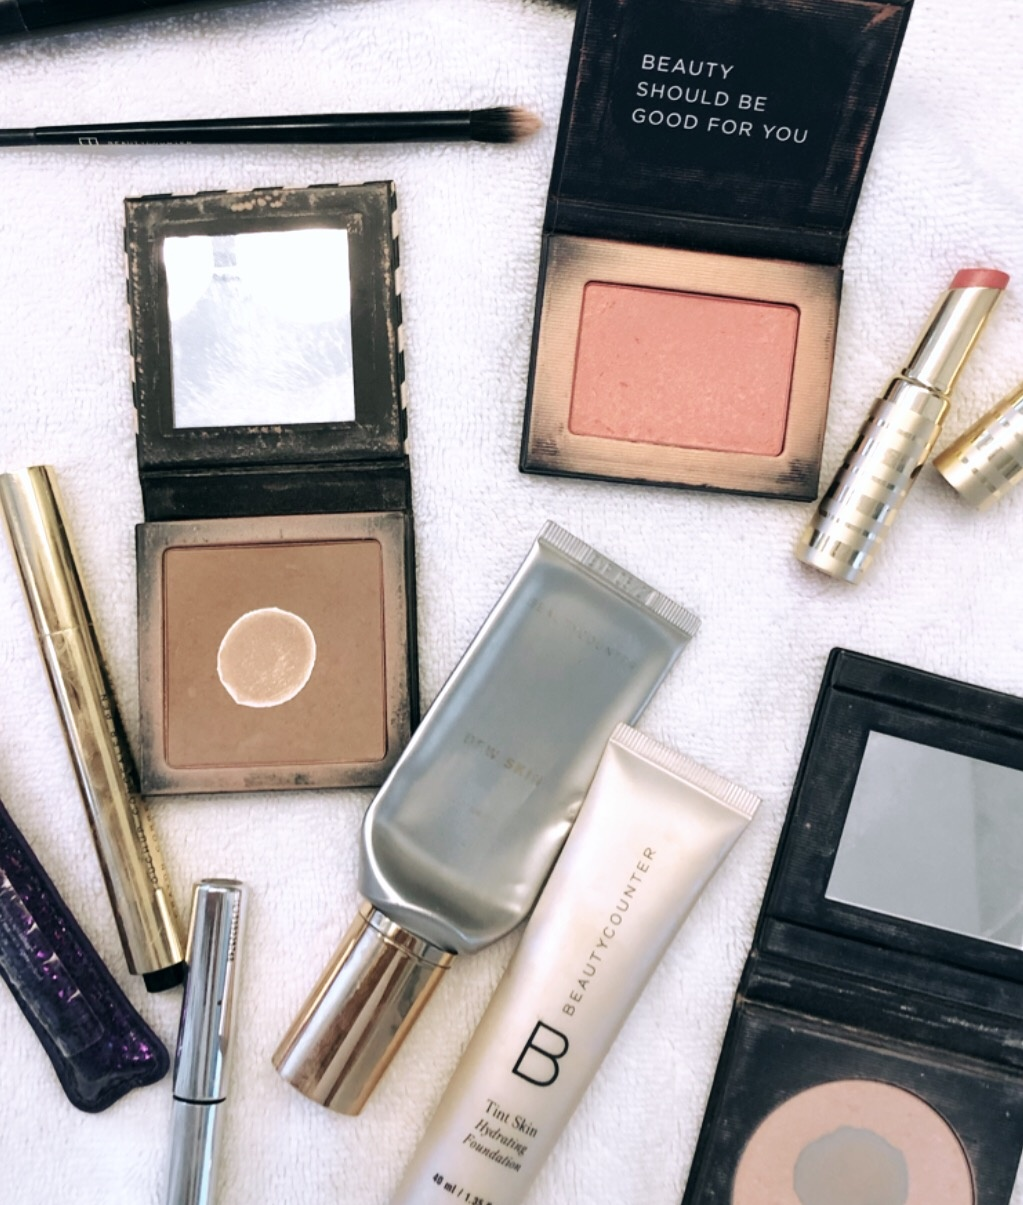 beautycounter makeup